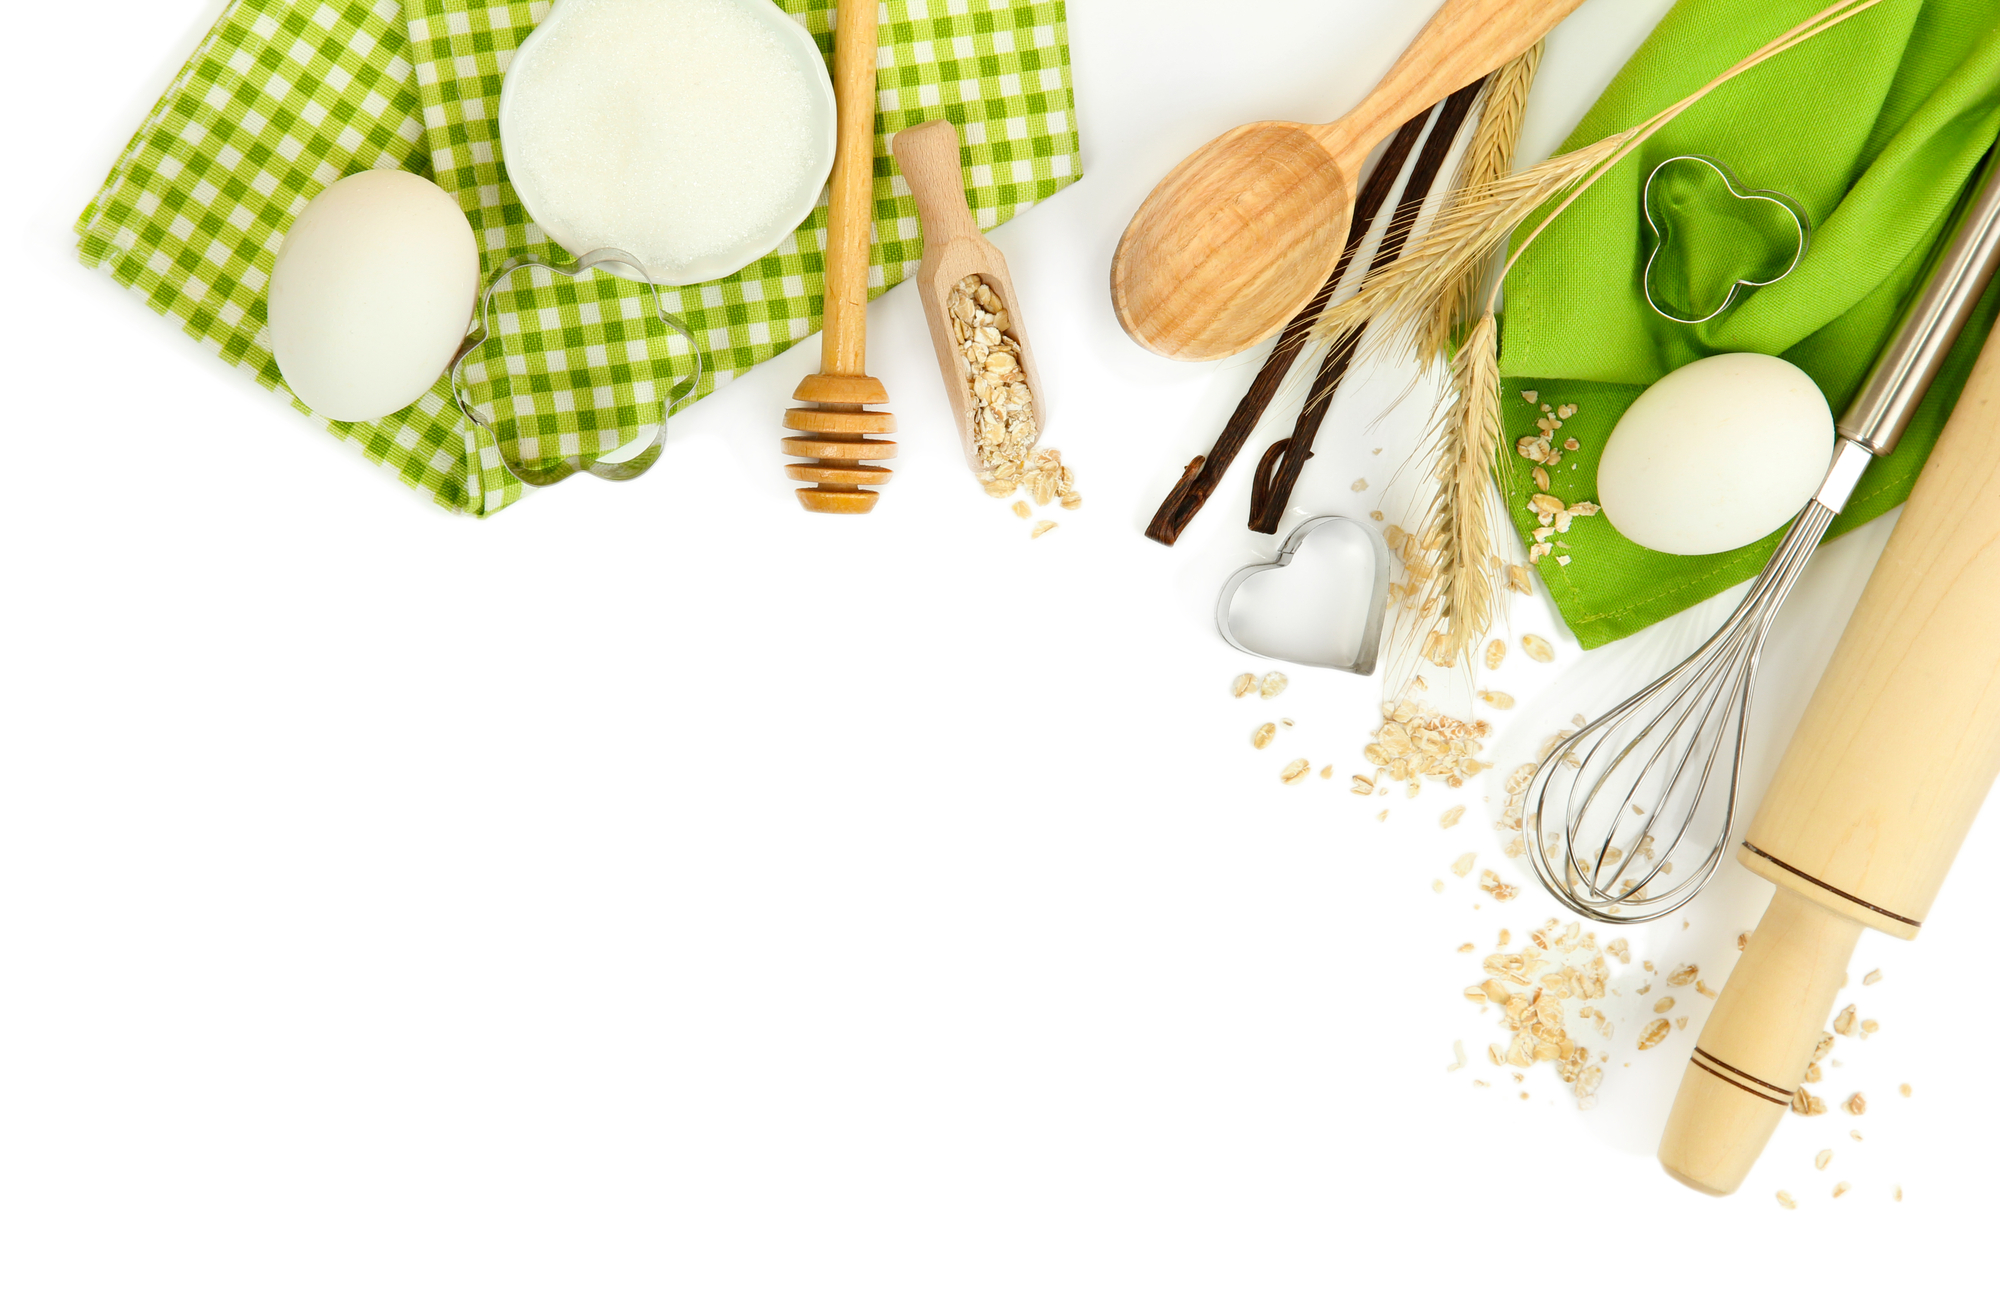 Cooking concept. Basic baking ingredients and kitchen tools isolated on white